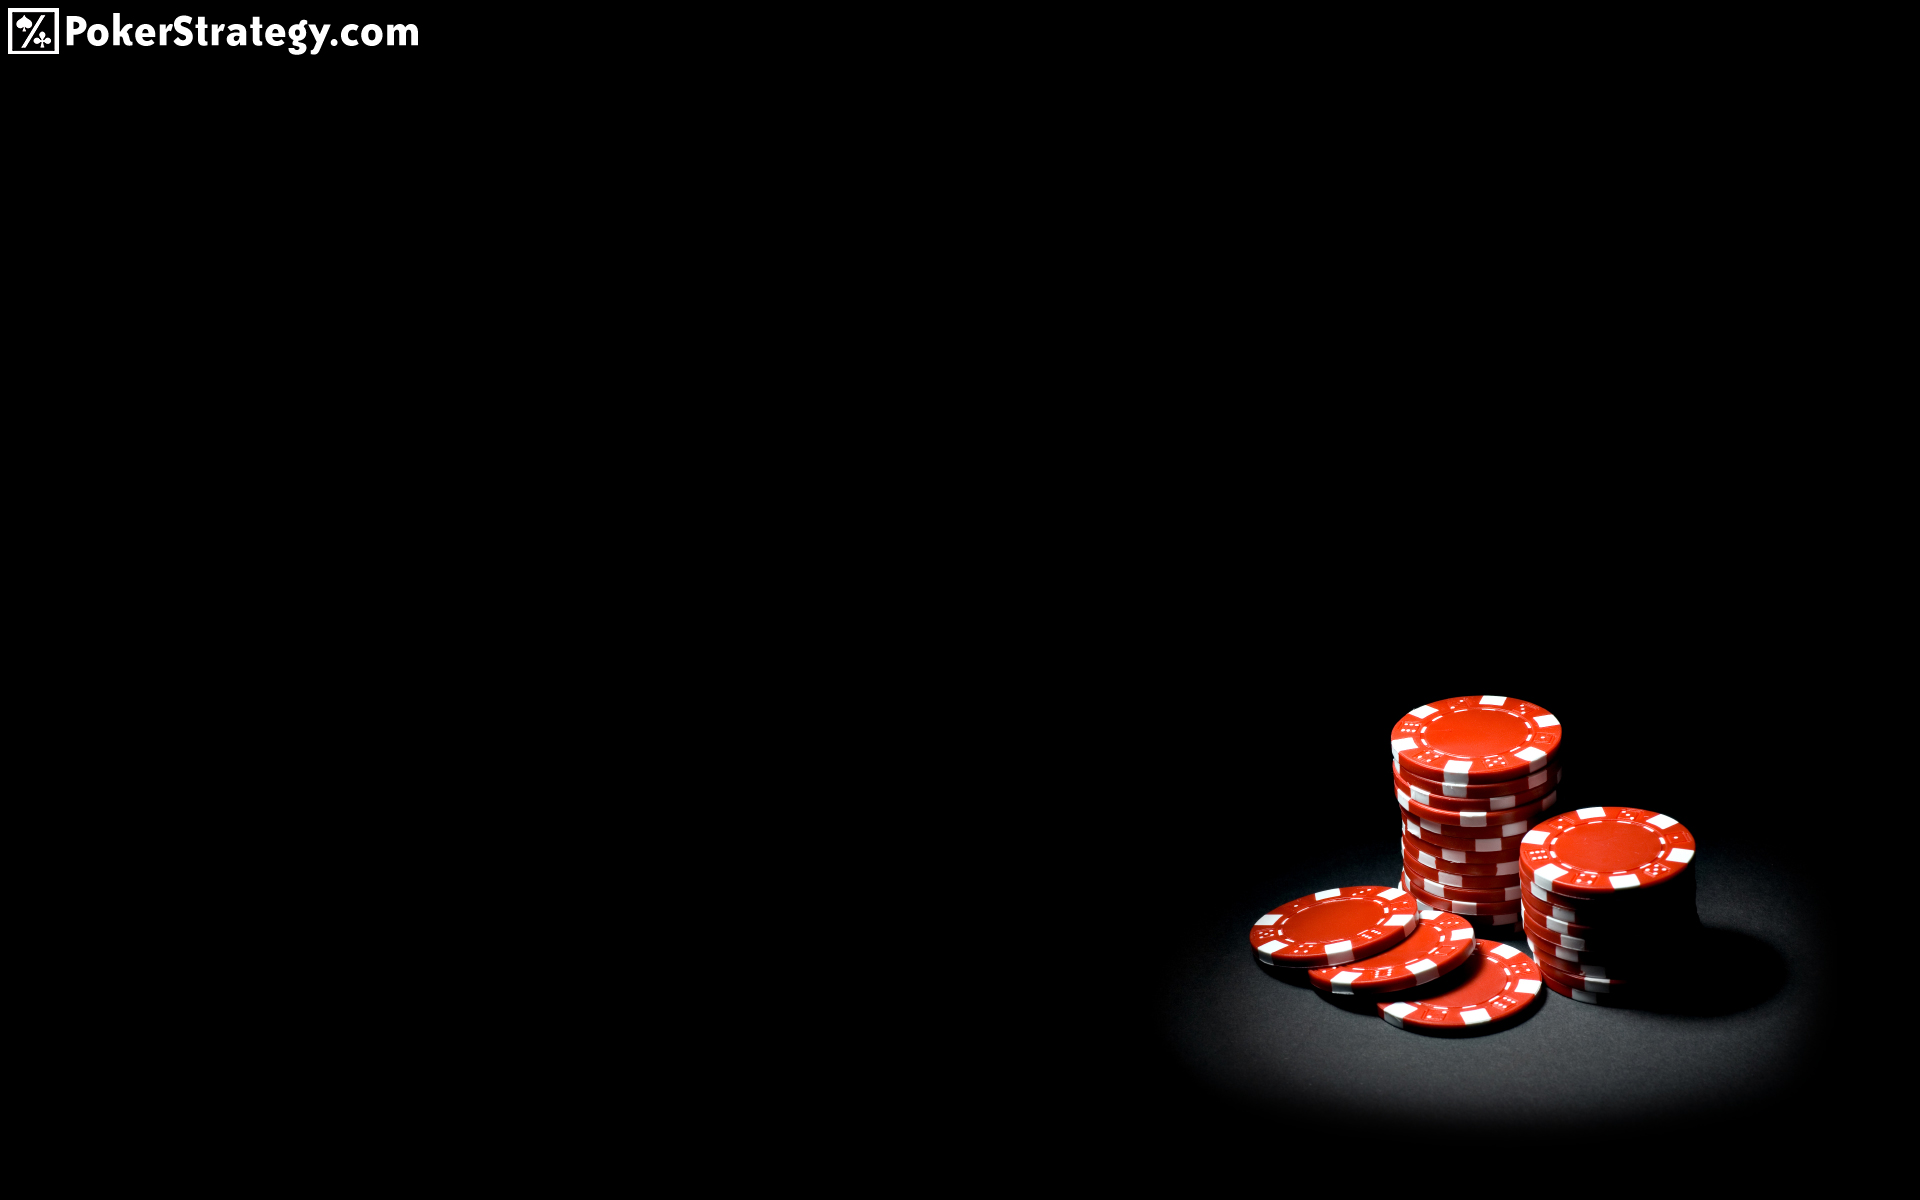 Red Poker Chips Wallpapers 16914 19201200 134831 HD Wallpaper Res 1920x1200